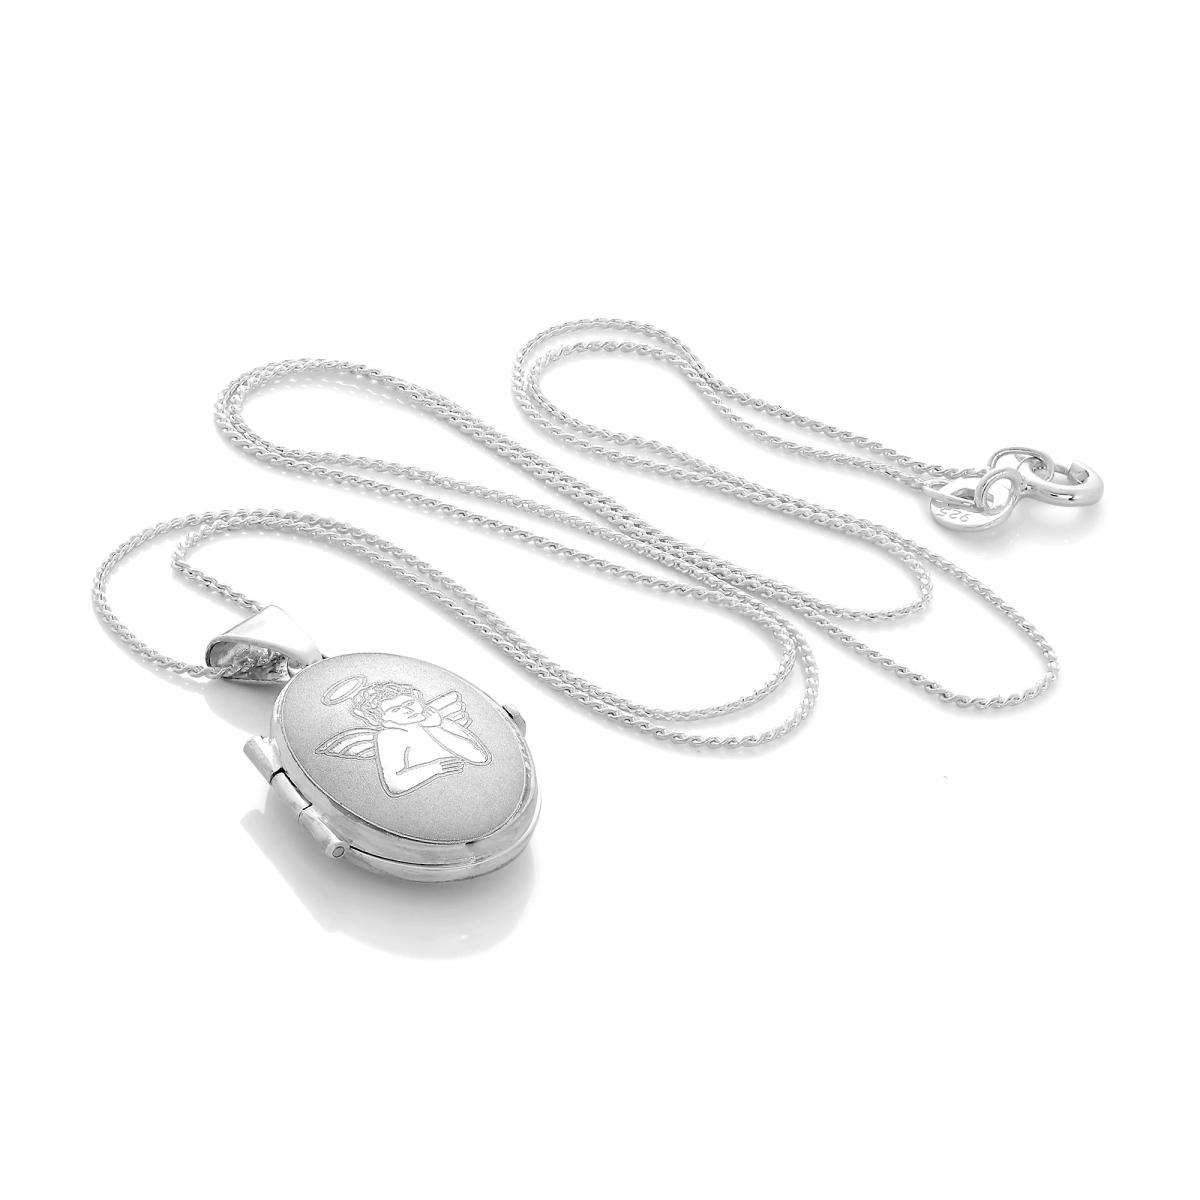 Alterative image for Small Matt Sterling Silver Oval Locket with Angel on Chain